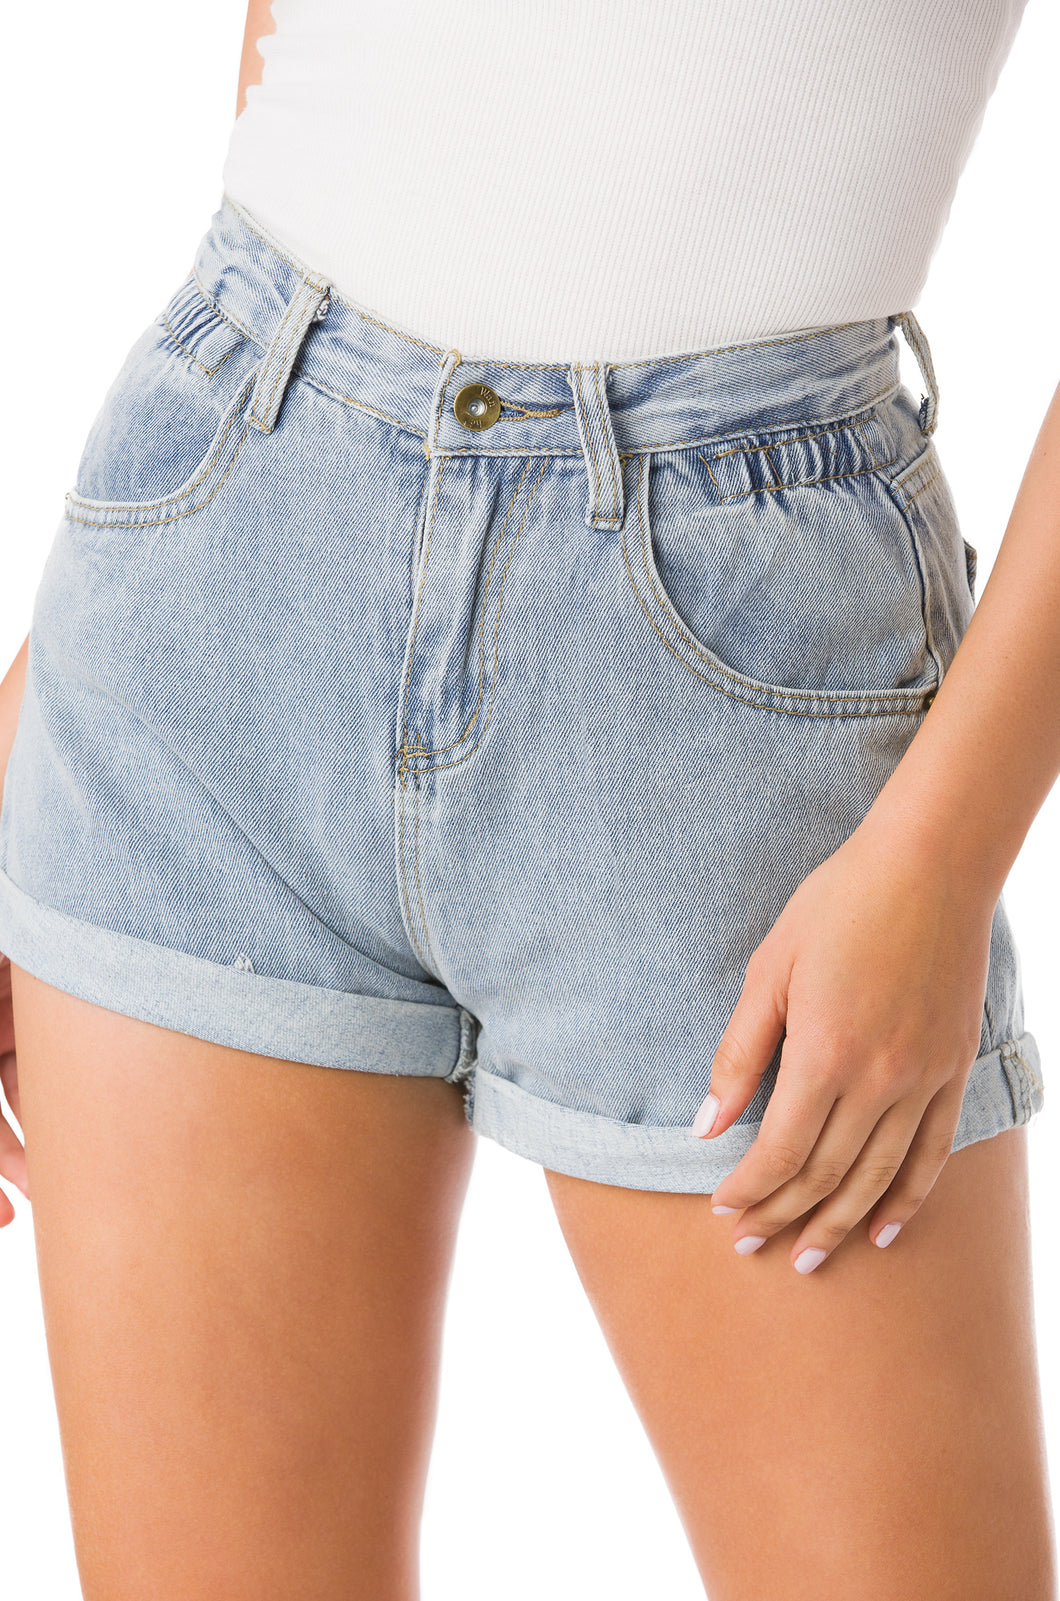 Grab Worthy Short - Denim